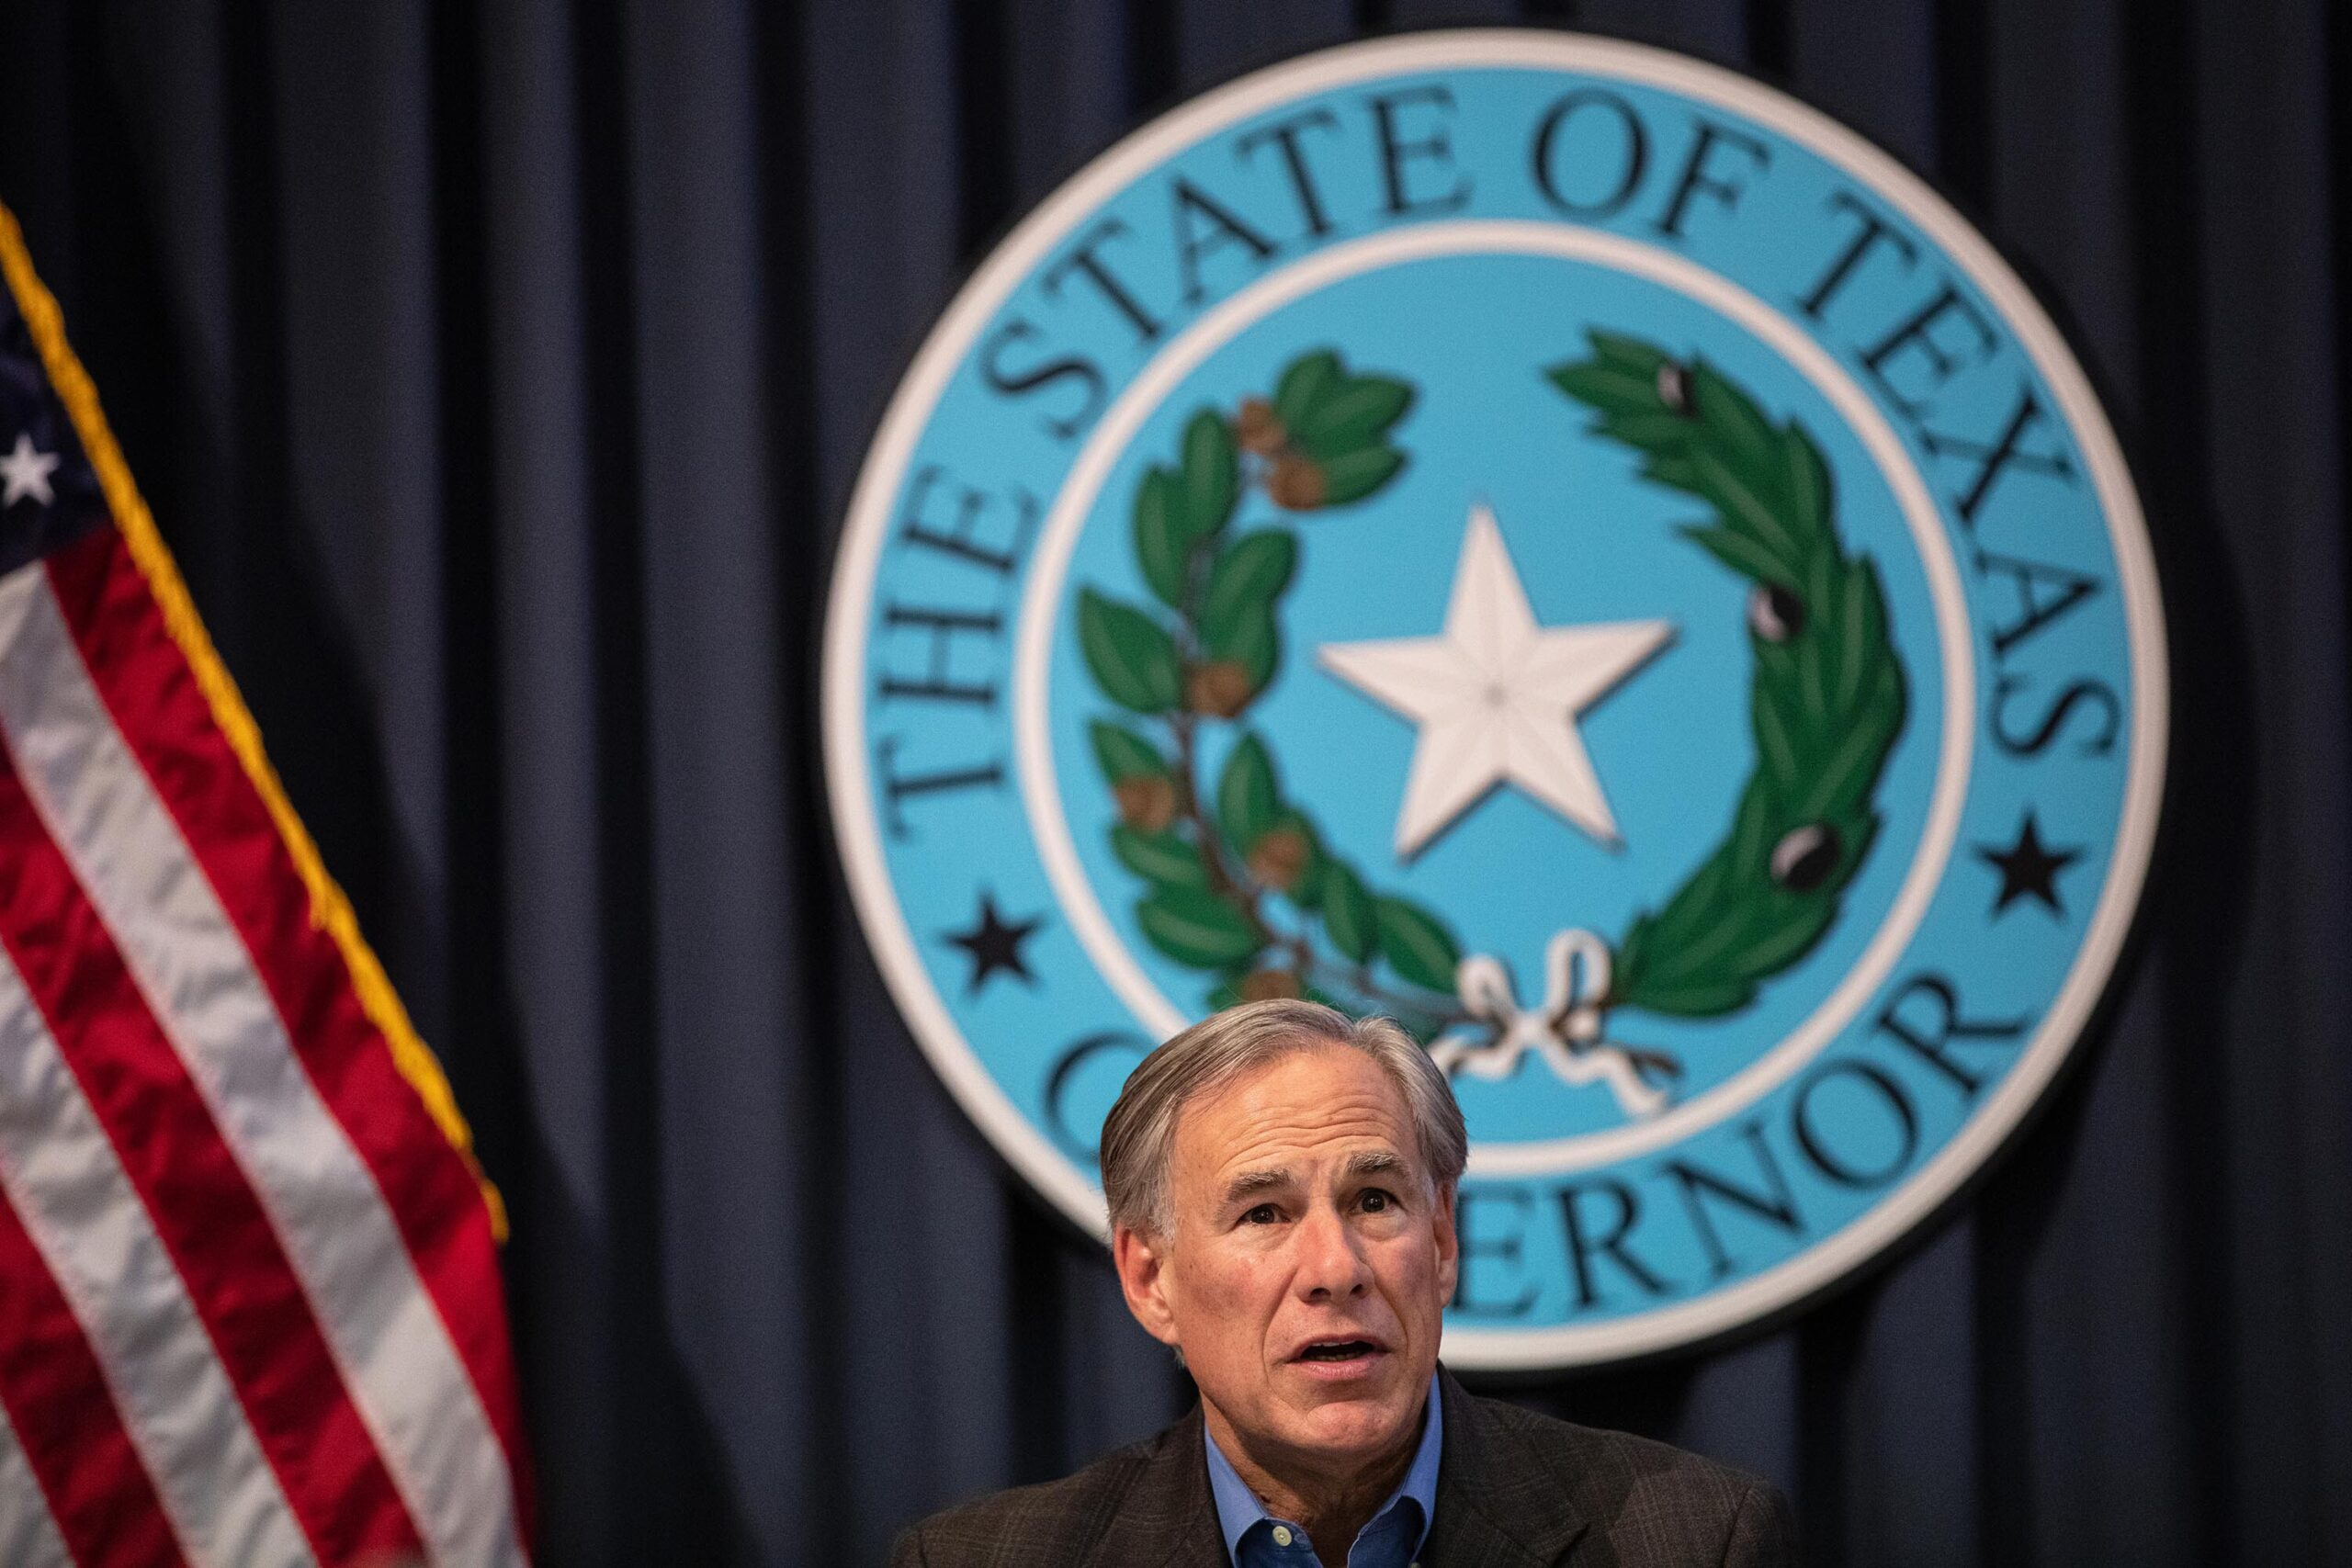 U.S. Attorney General threatens to sue Texas governor over order targeting migrants 1